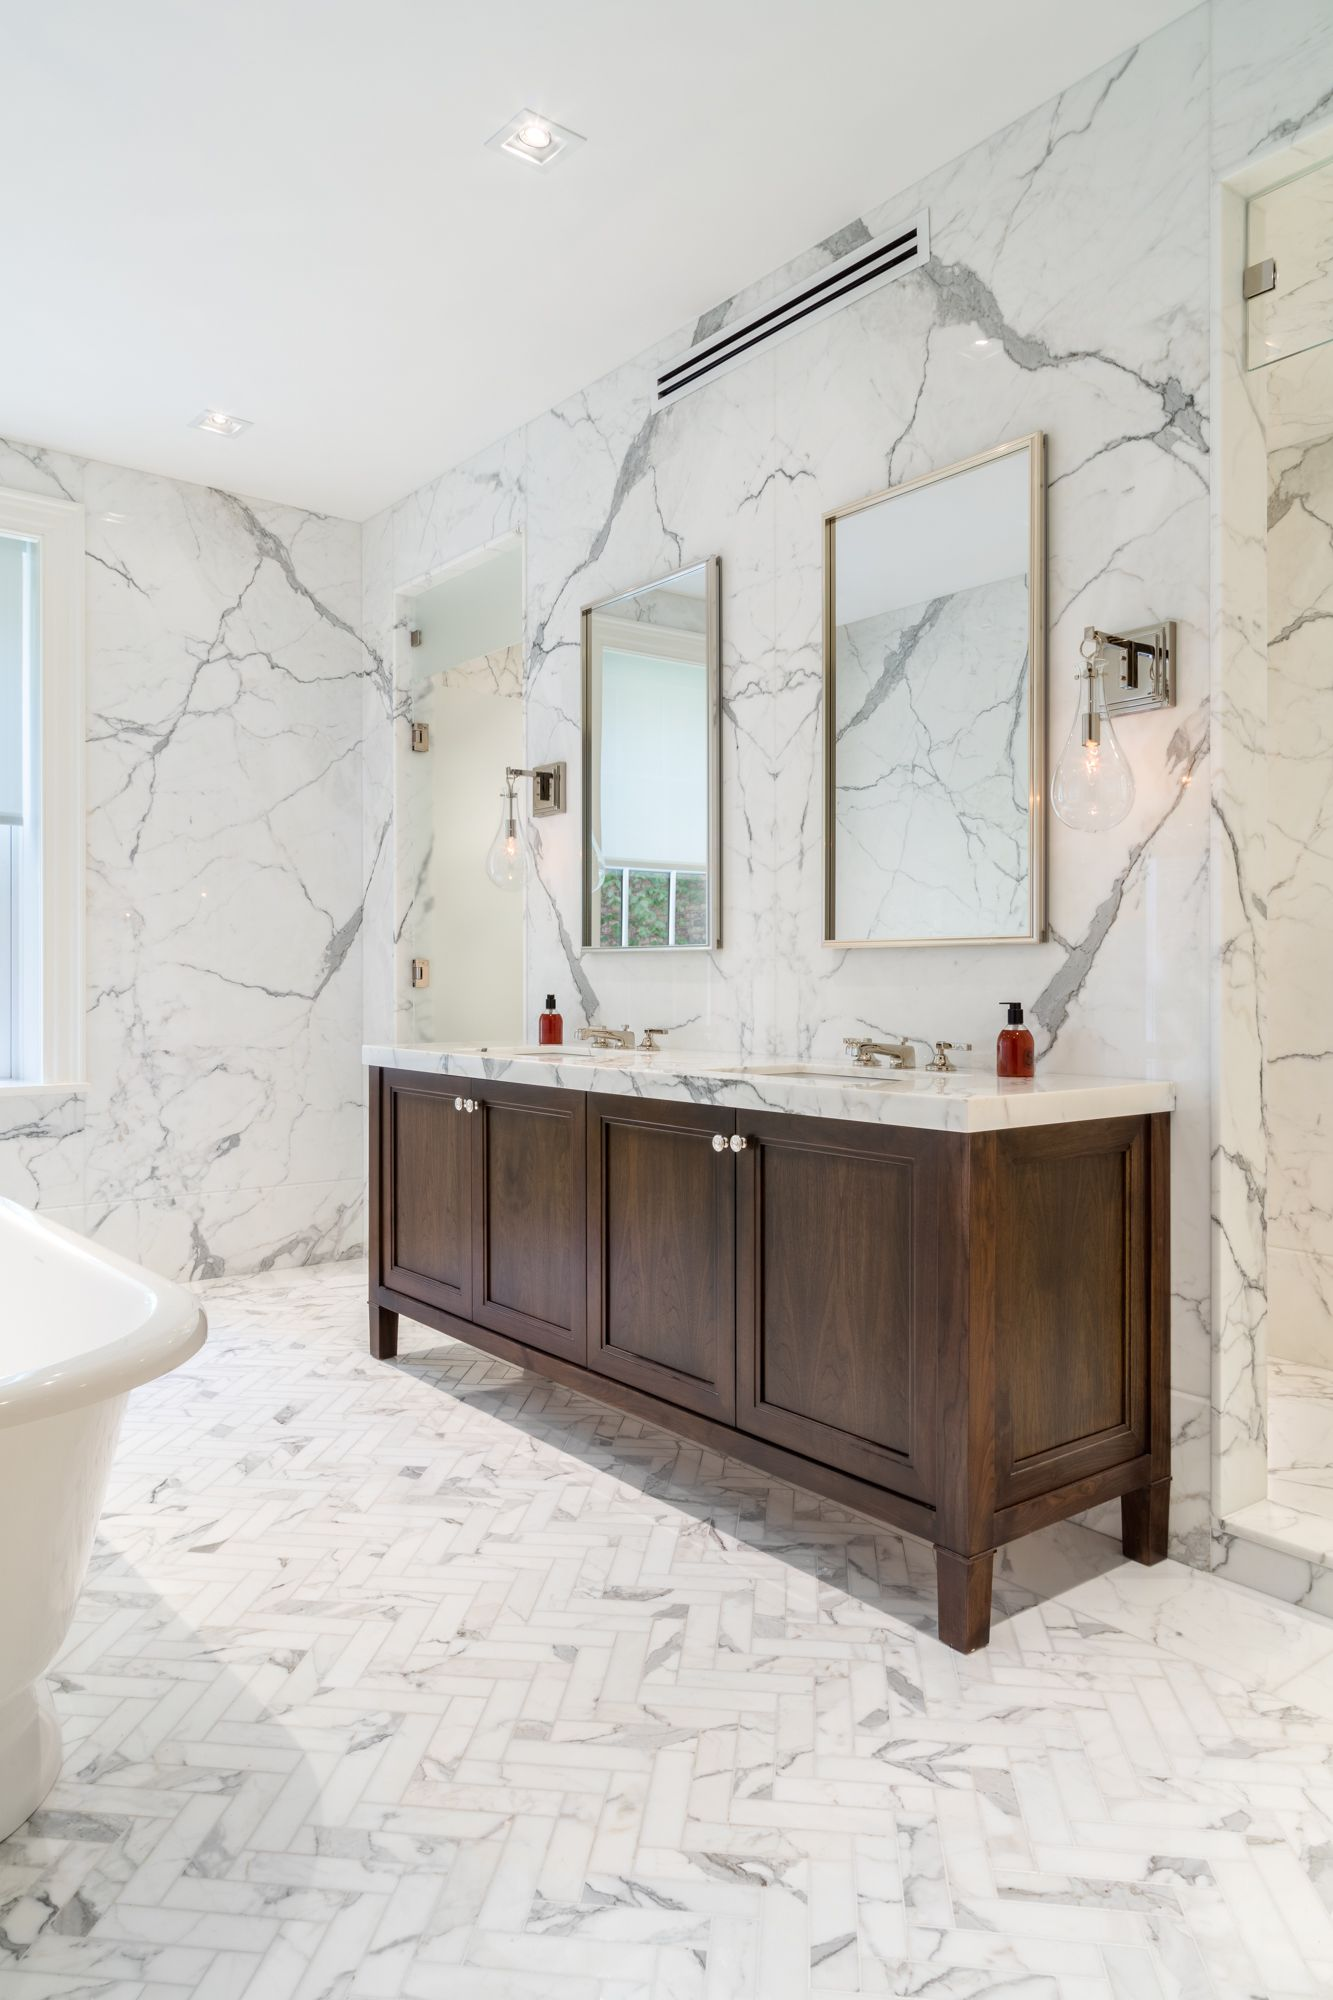 Artistic Tile I This Luxe Brooklyn Townhouse Was Tiled With 25 Slabs Of Calacatta Gold Marble Includ Calacatta Marble Bathroom Artistic Tile Bathroom Flooring